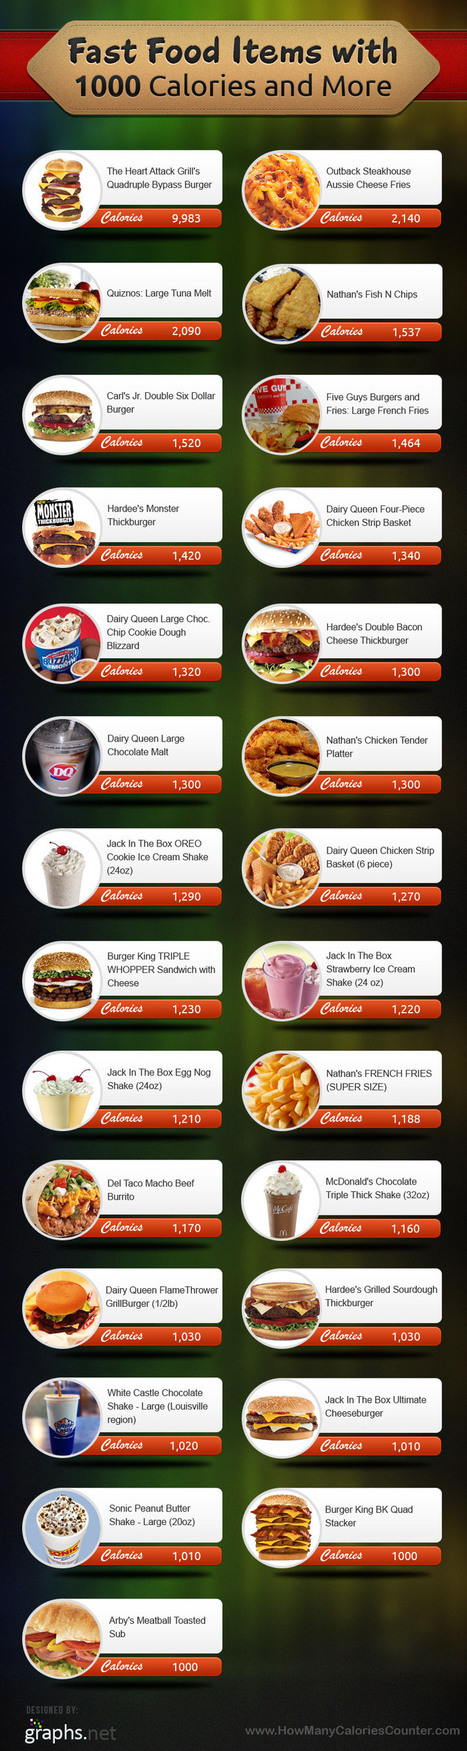 25+ Fast Food Items with 1000 Calories or More | All Infographics | All Infographics | Scoop.it